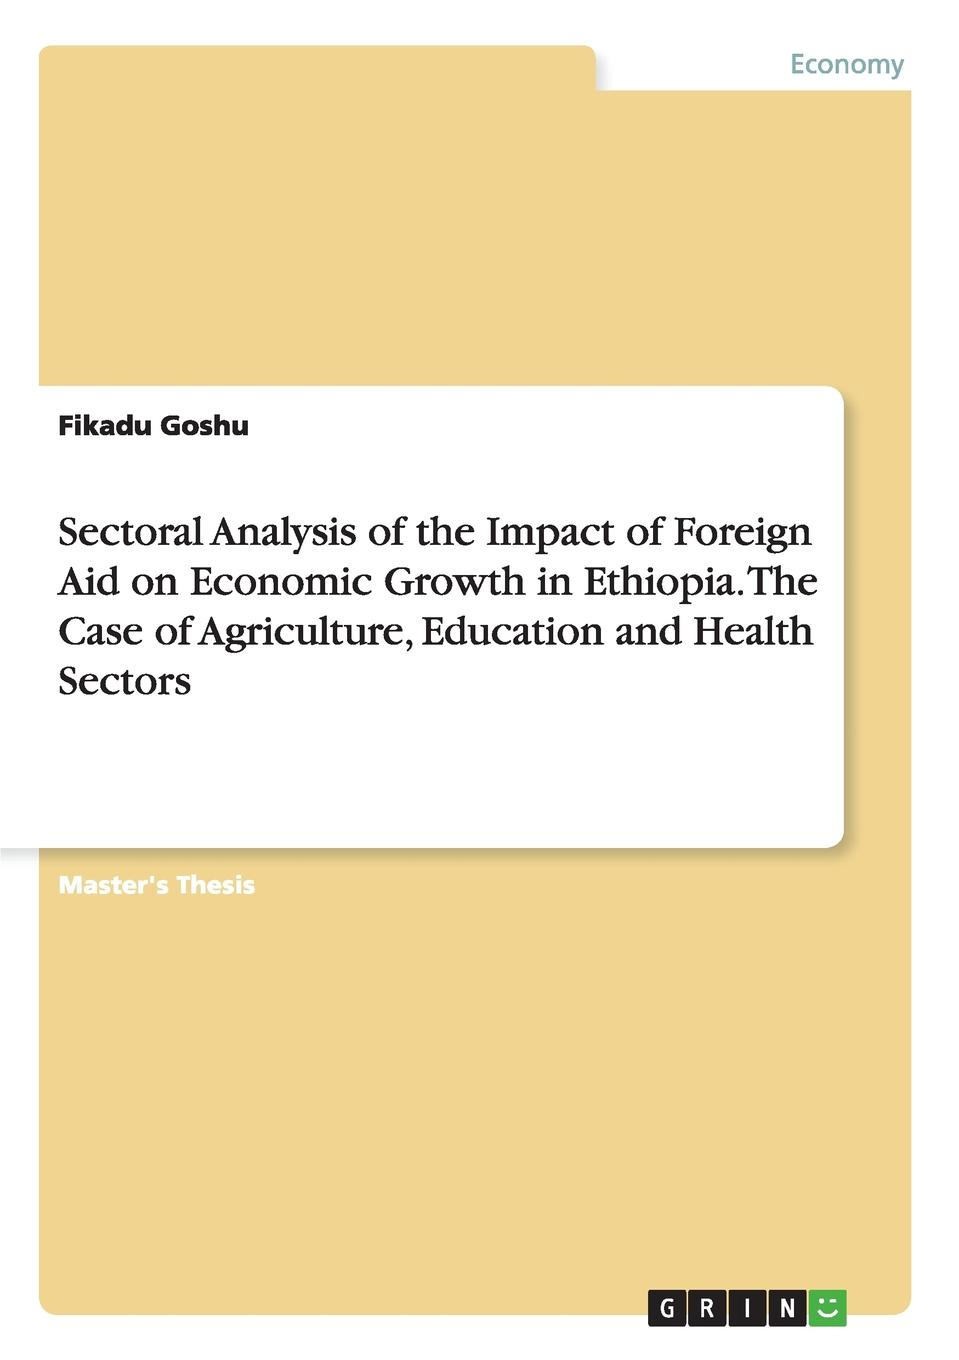 Fikadu Goshu Sectoral Analysis of the Impact of Foreign Aid on Economic Growth in Ethiopia. The Case of Agriculture, Education and Health Sectors development in catch and efforts in lake tana fisheries ethiopia